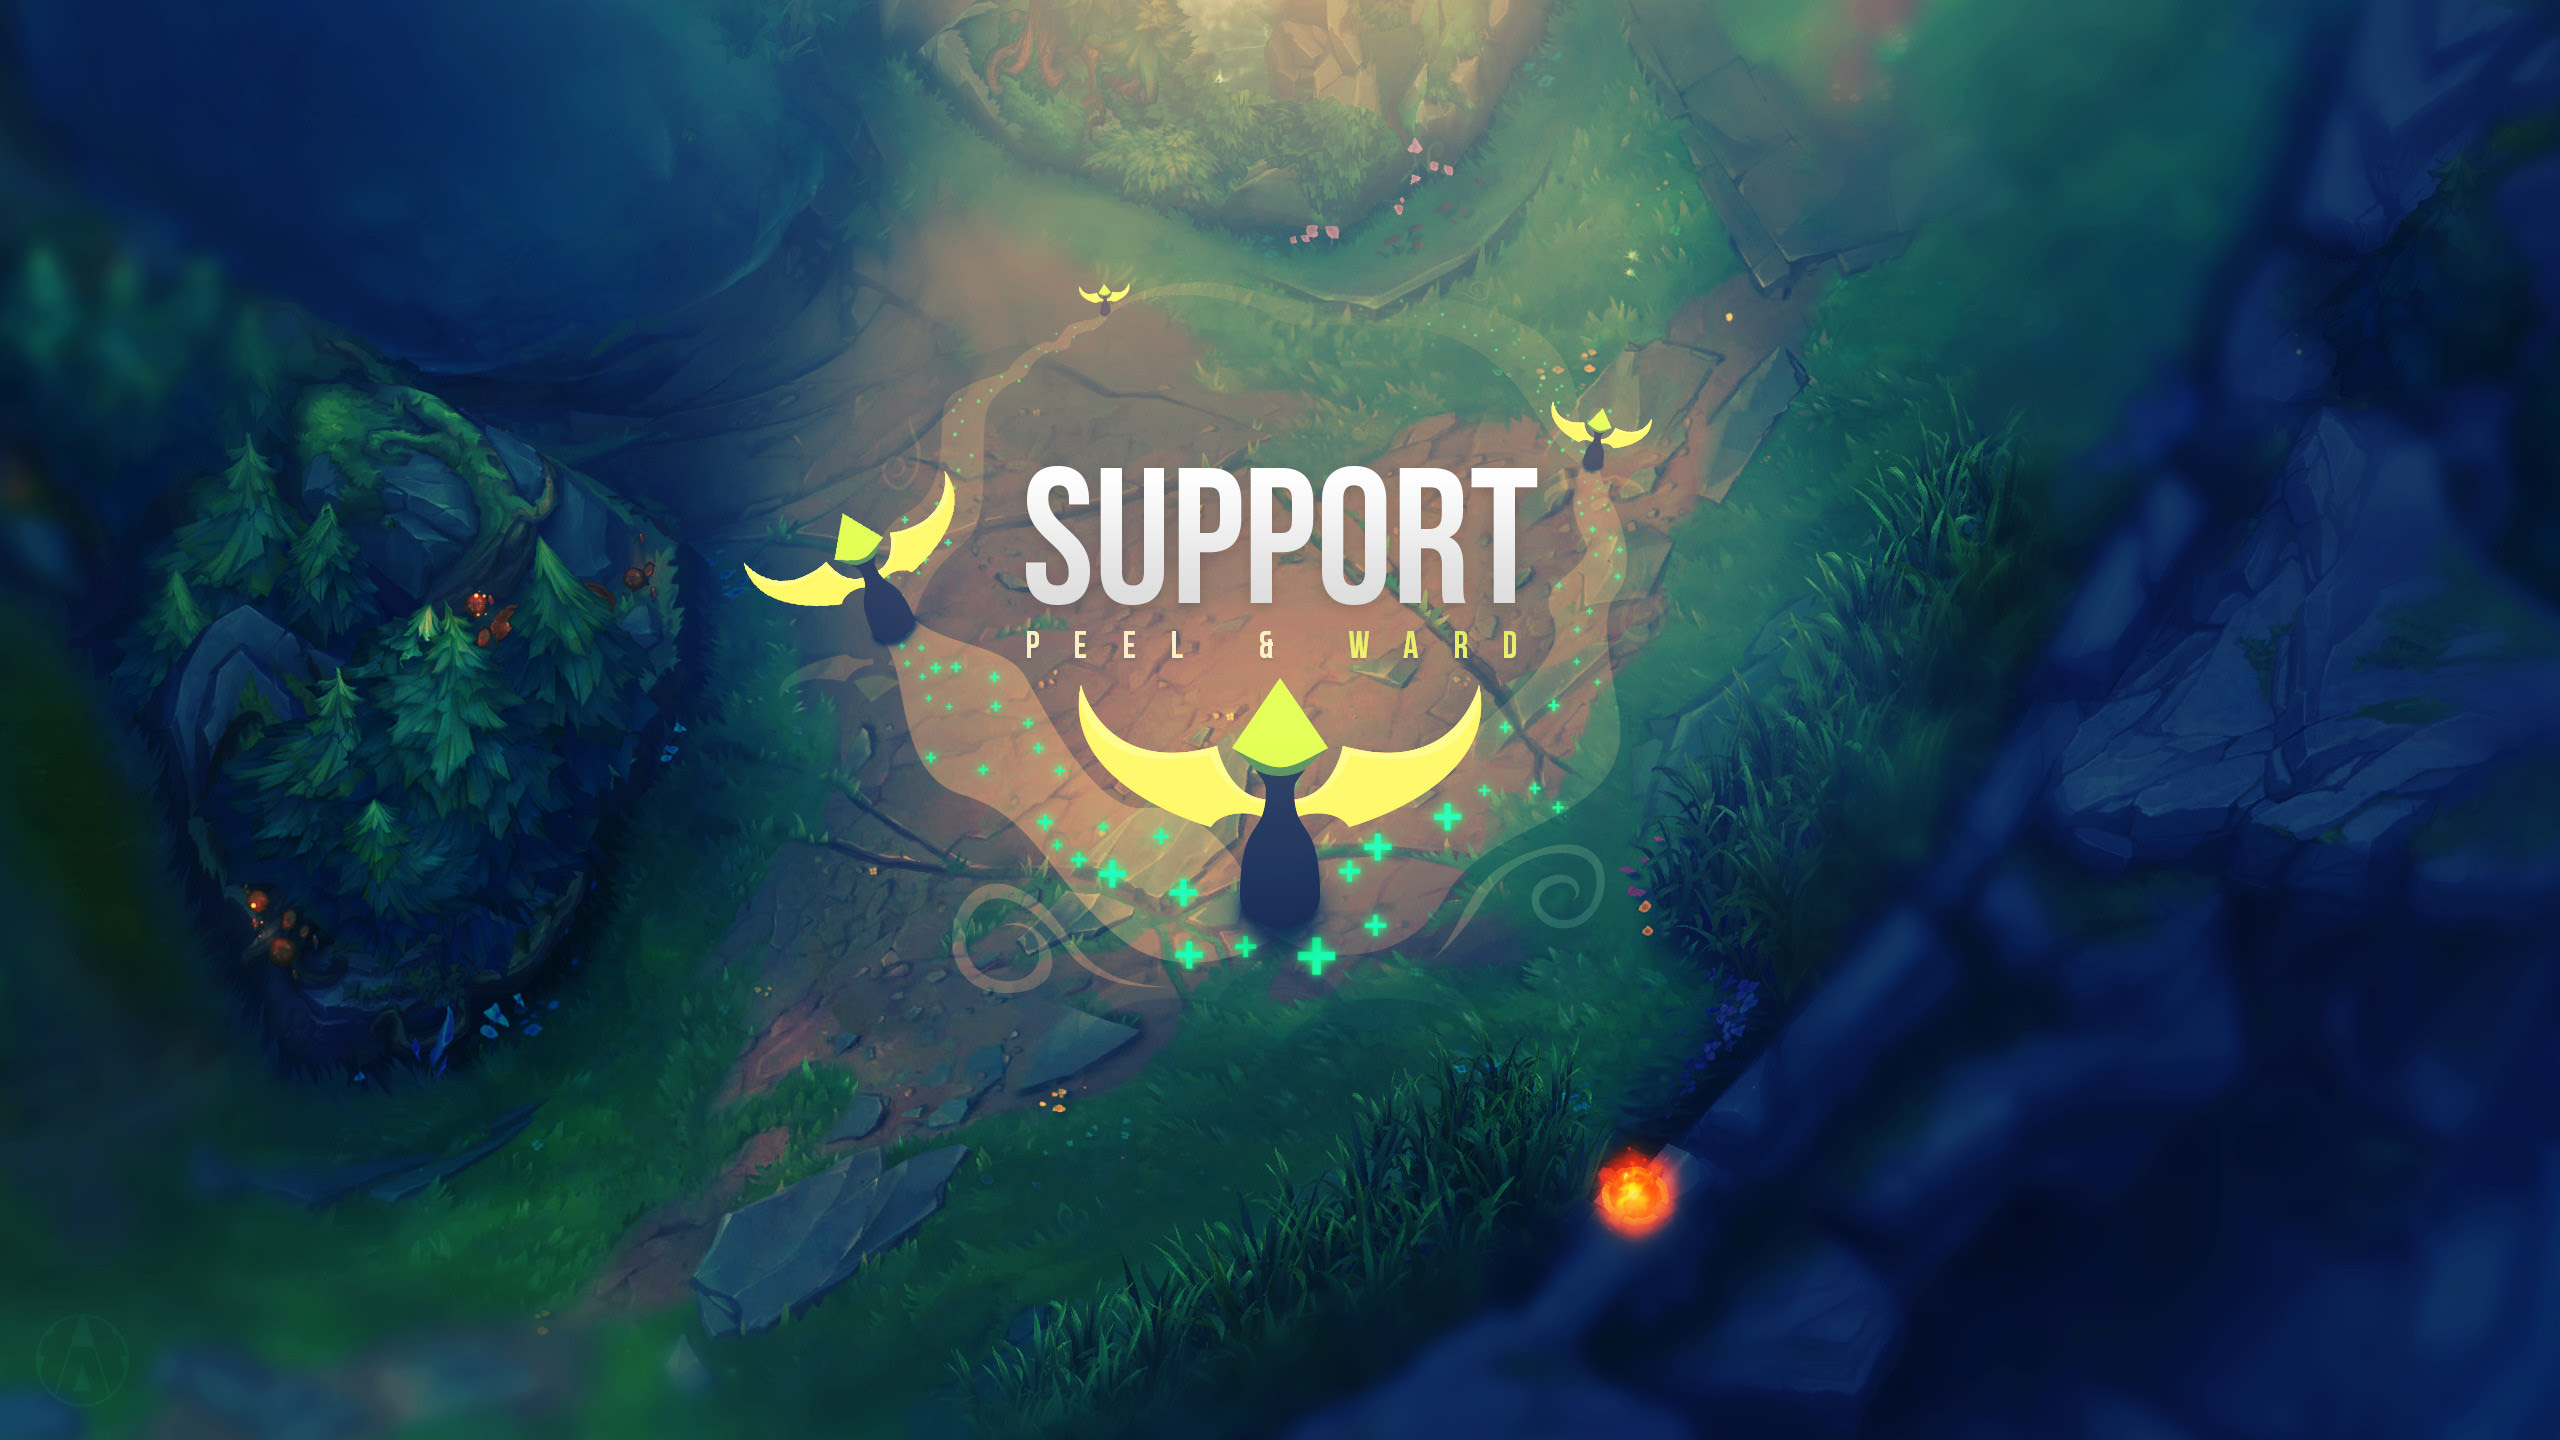 Lol Support Wallpaper 86 Images